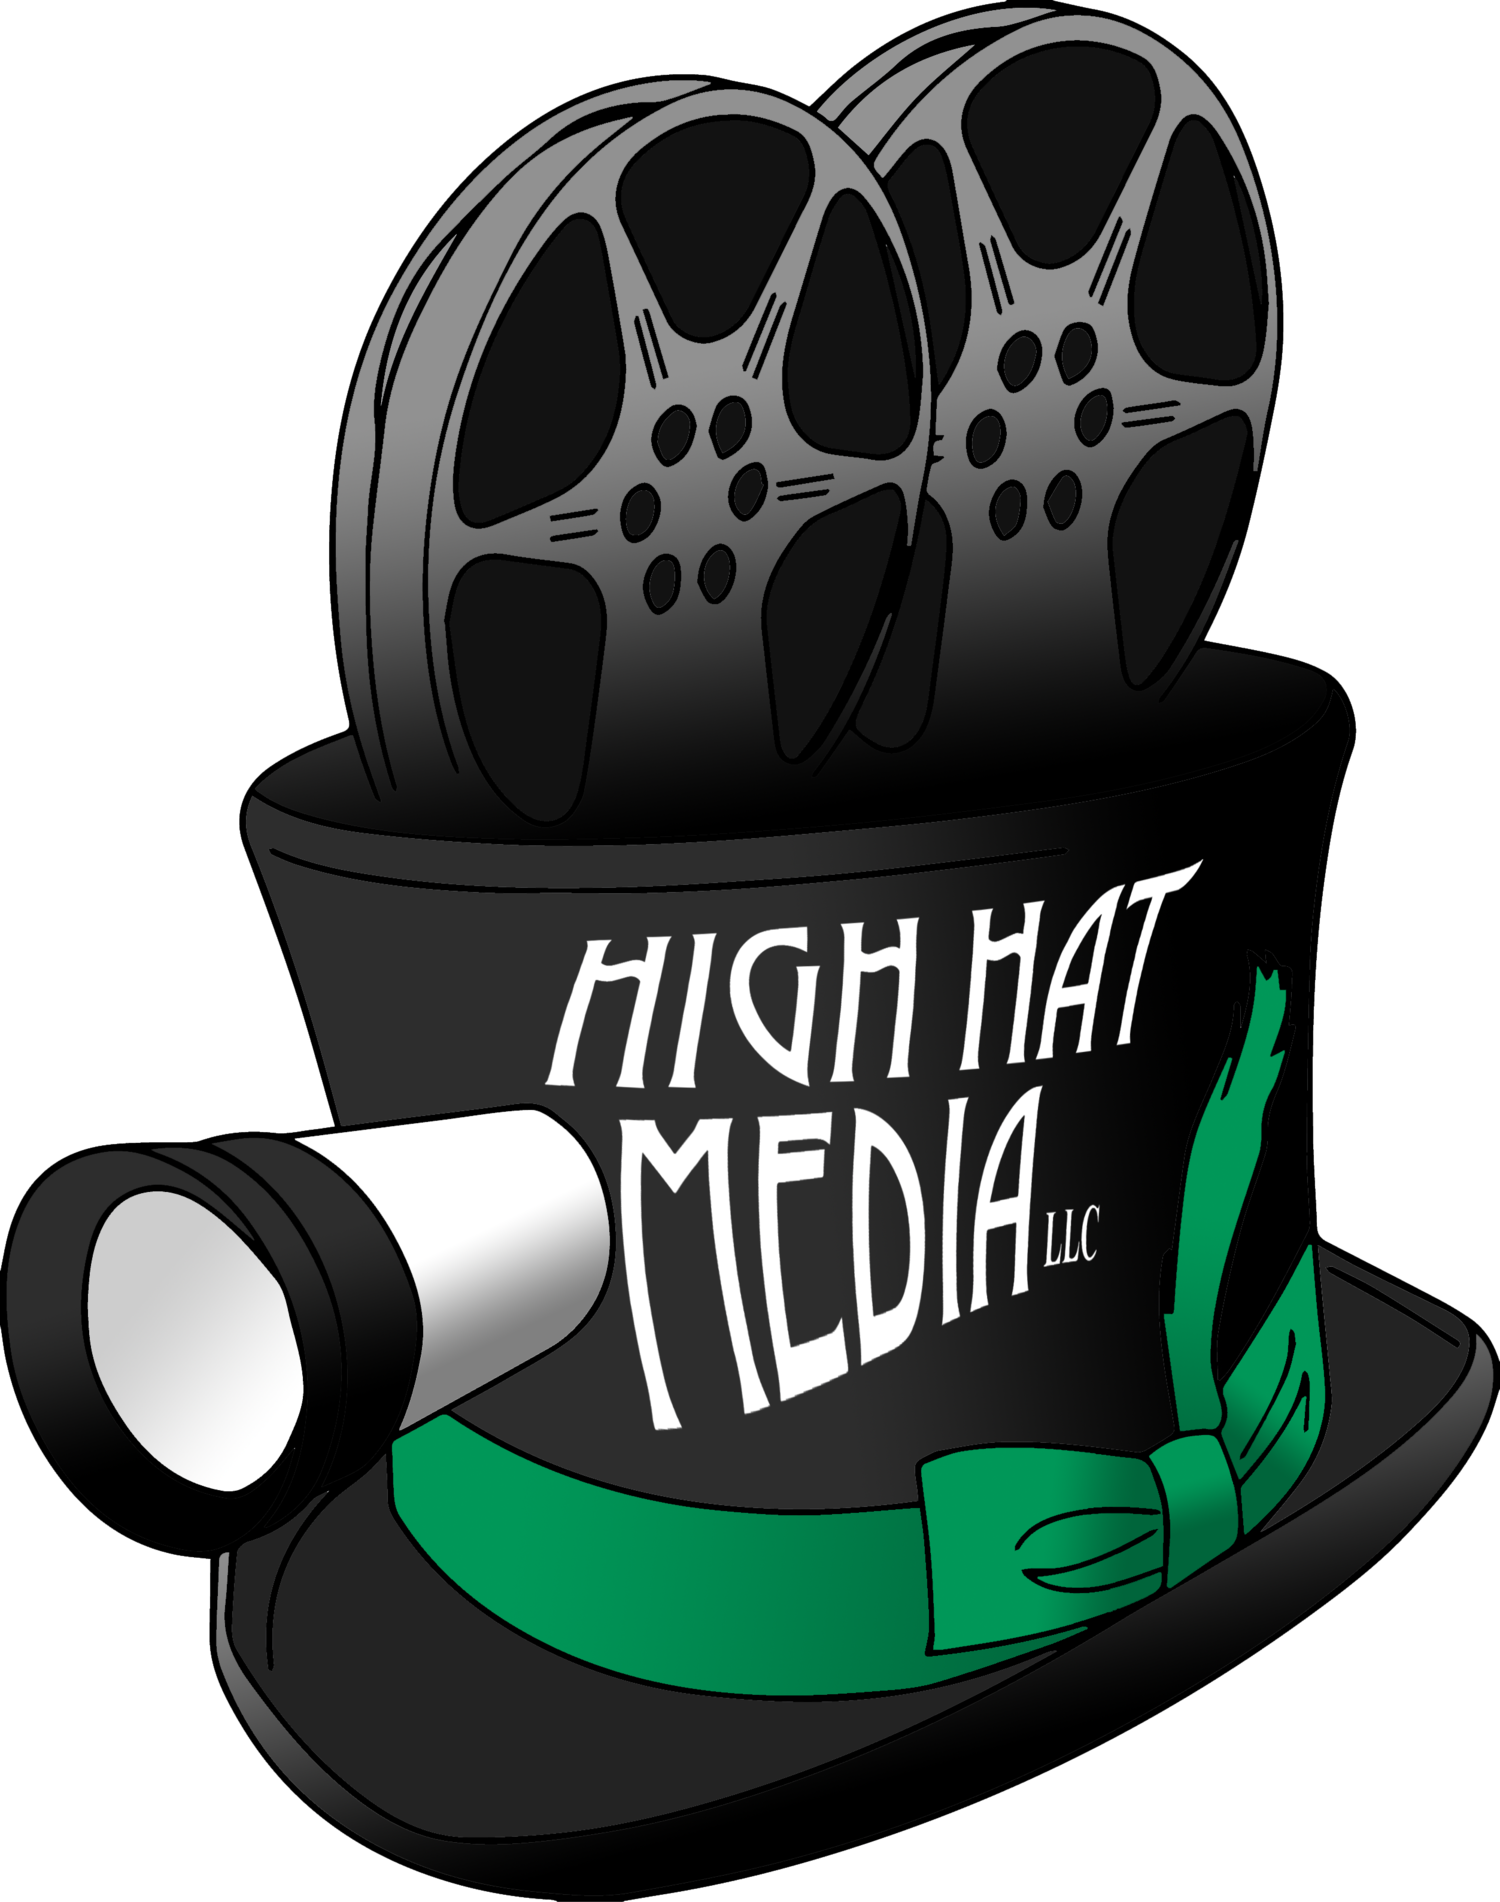 High Hat Media LLC